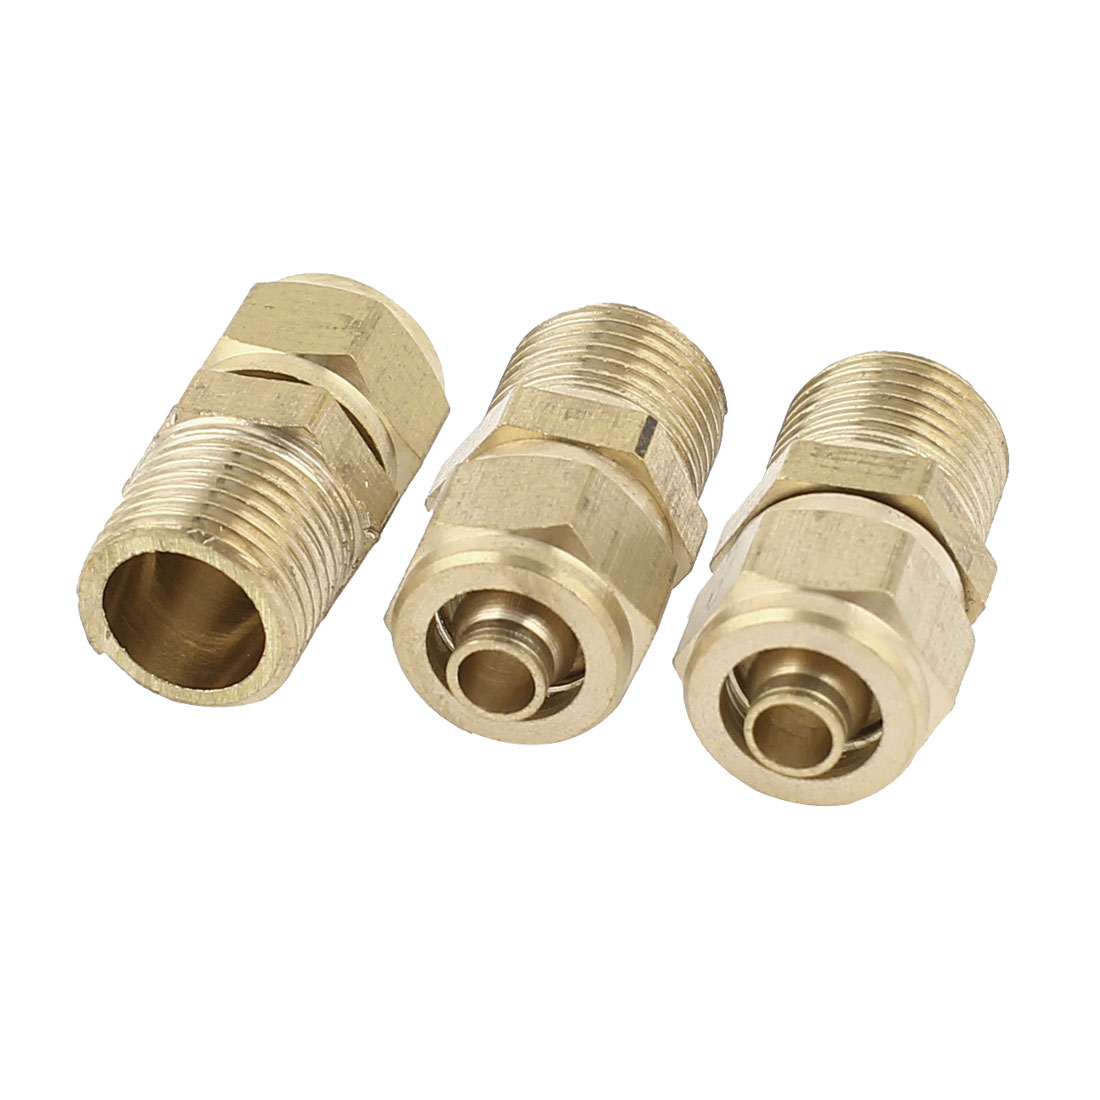 3Pcs Brass 1/8PT Thread 4mm Hose Quick Joint Connectors 20mm x 10mm